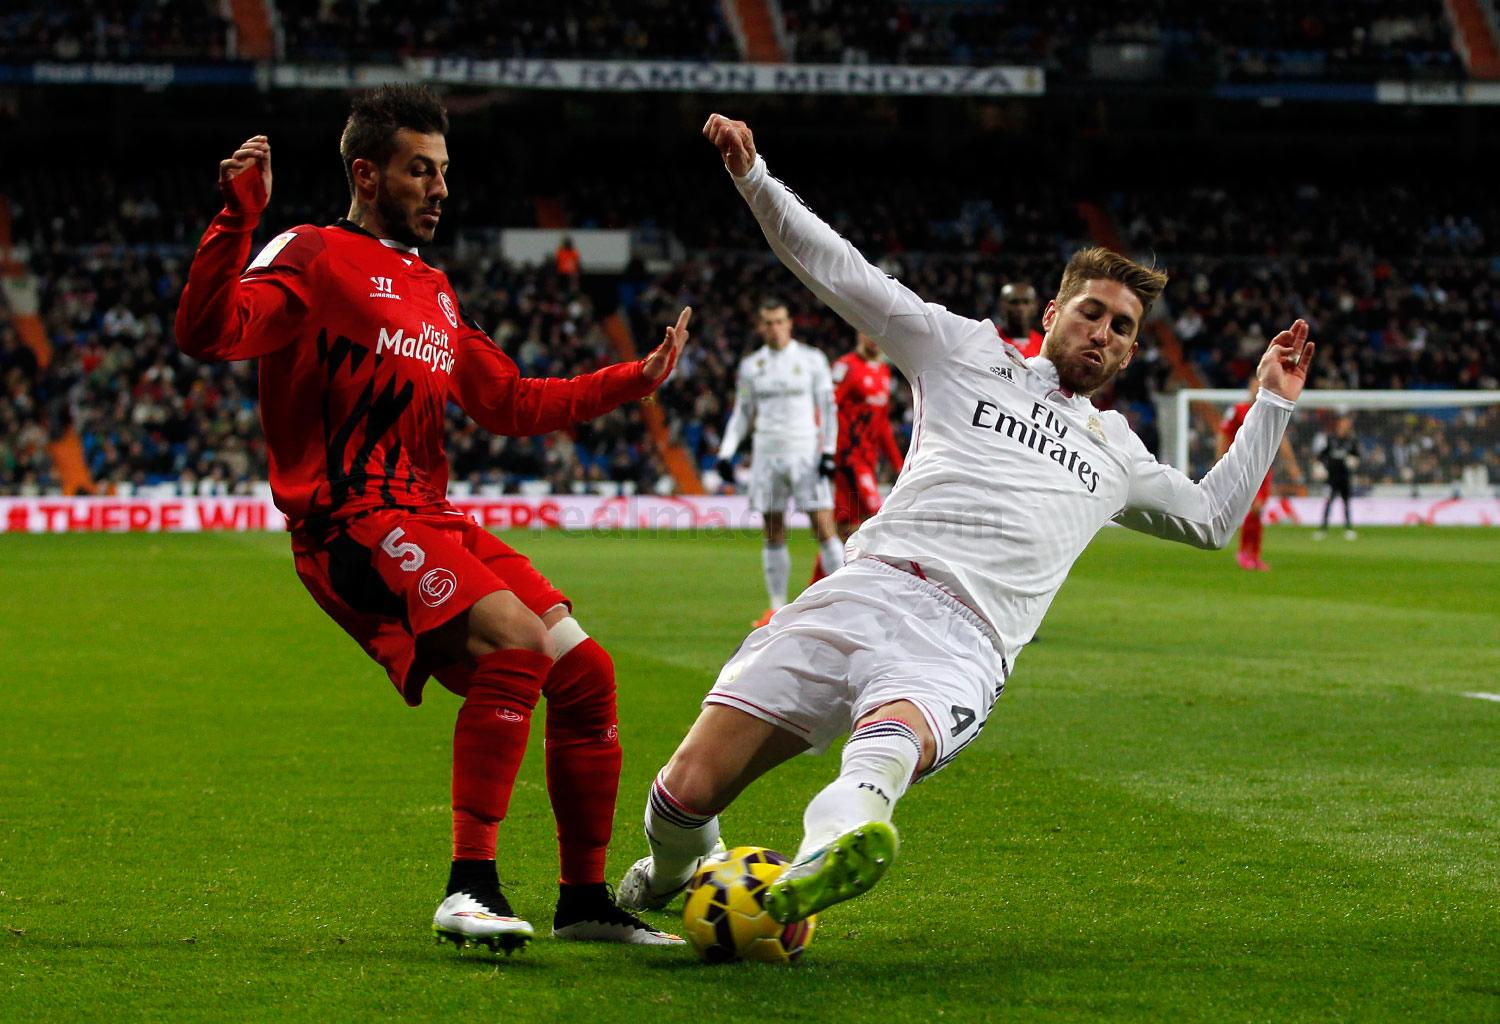 Real Madrid - Real Madrid - Sevilla - 04-02-2015